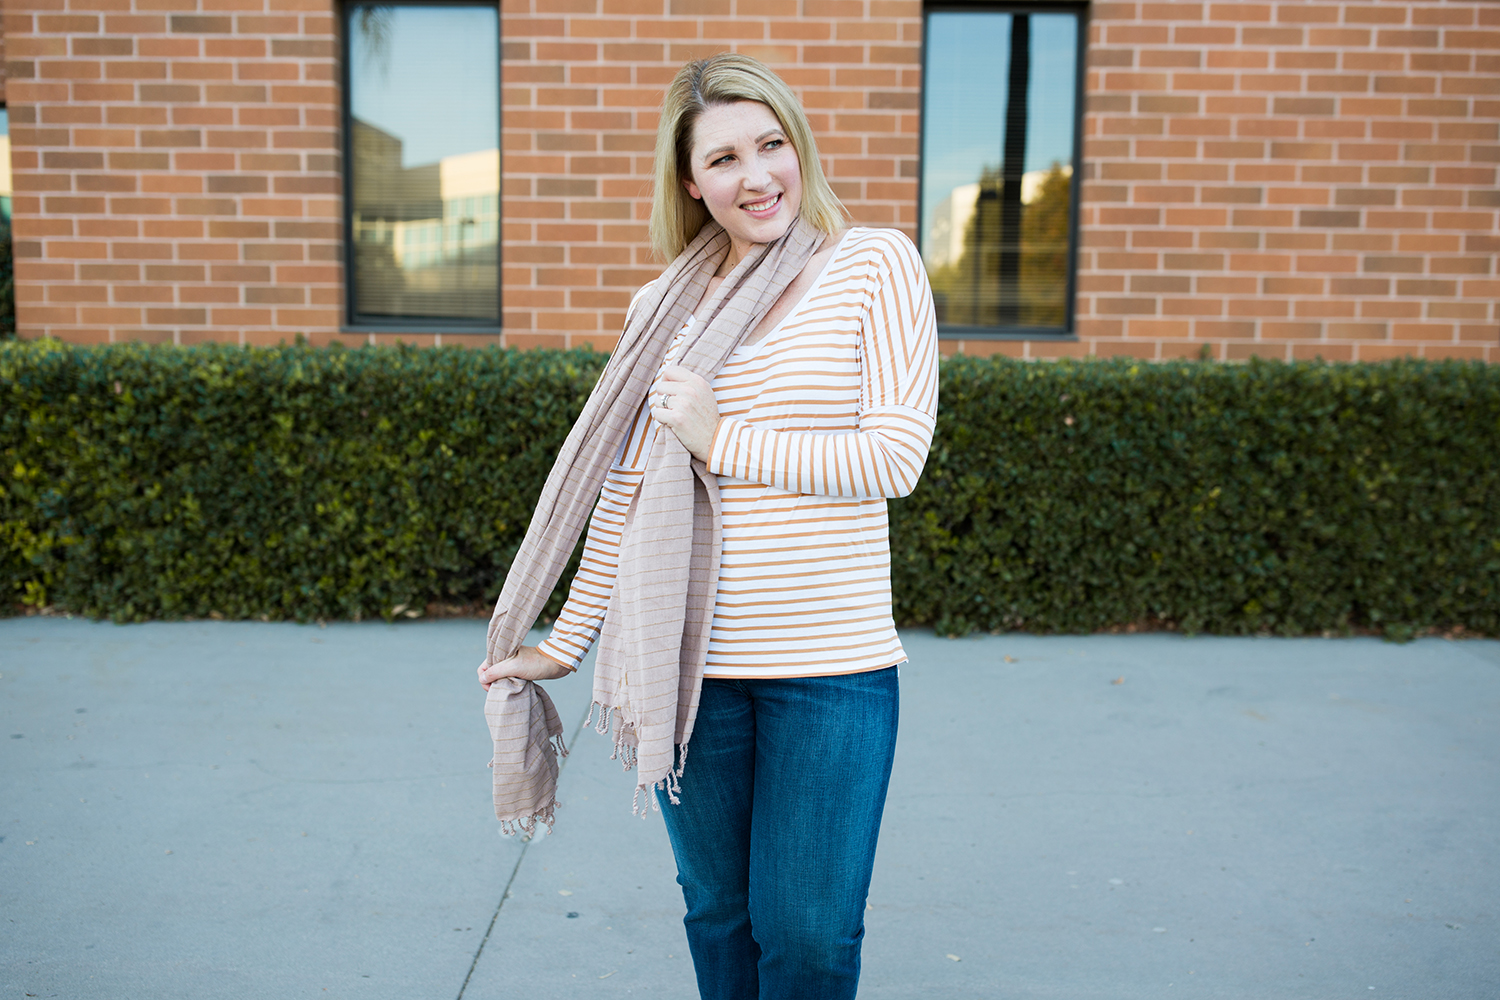 Fall Outfit: This striped tee is a great fall wardrobe staple!